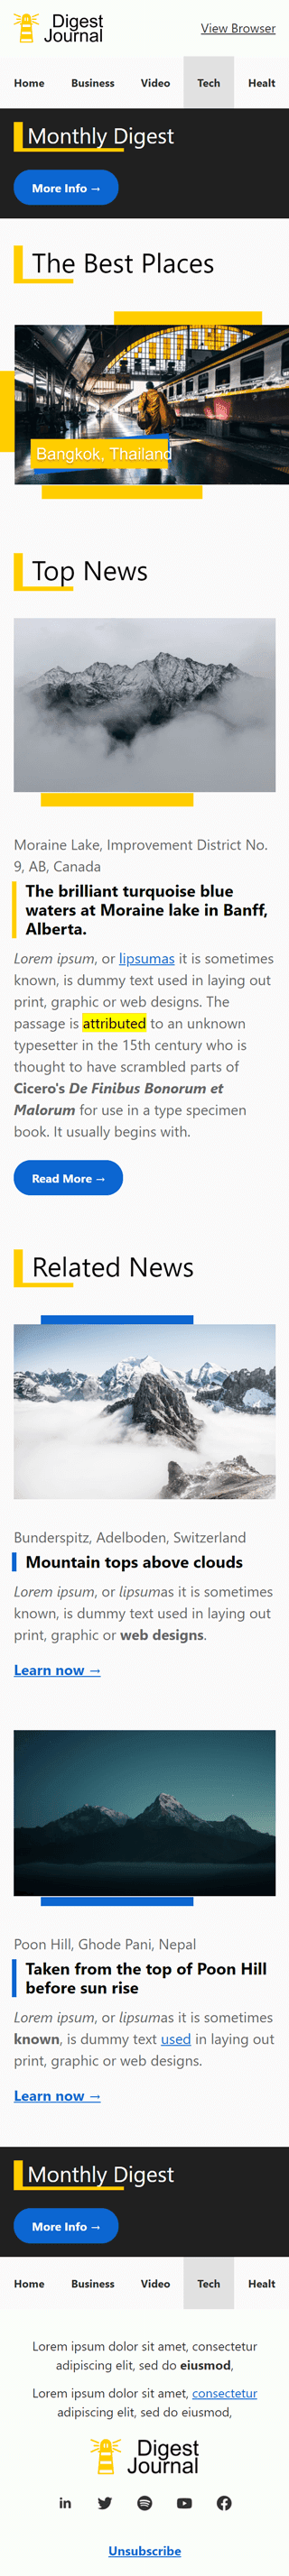 Email Digest Email Template «Smart Digest» for Publications & Blogging industry mobile view